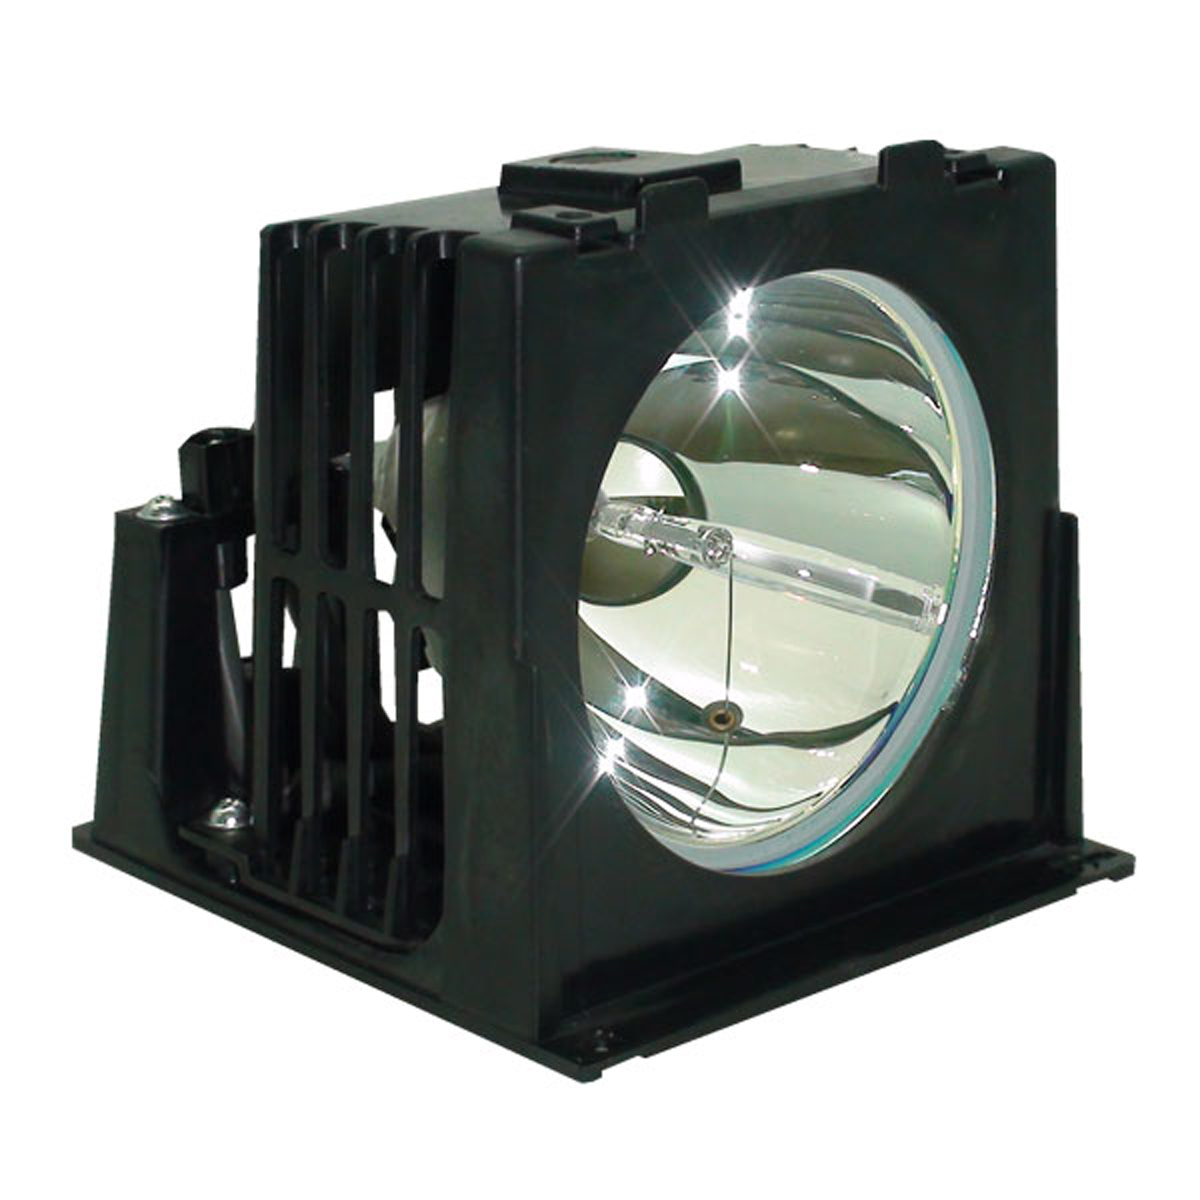 Mitsubishi Projector Bulb Replacement: Philips Lamp Housing For Mitsubishi WD 52628 Projection TV